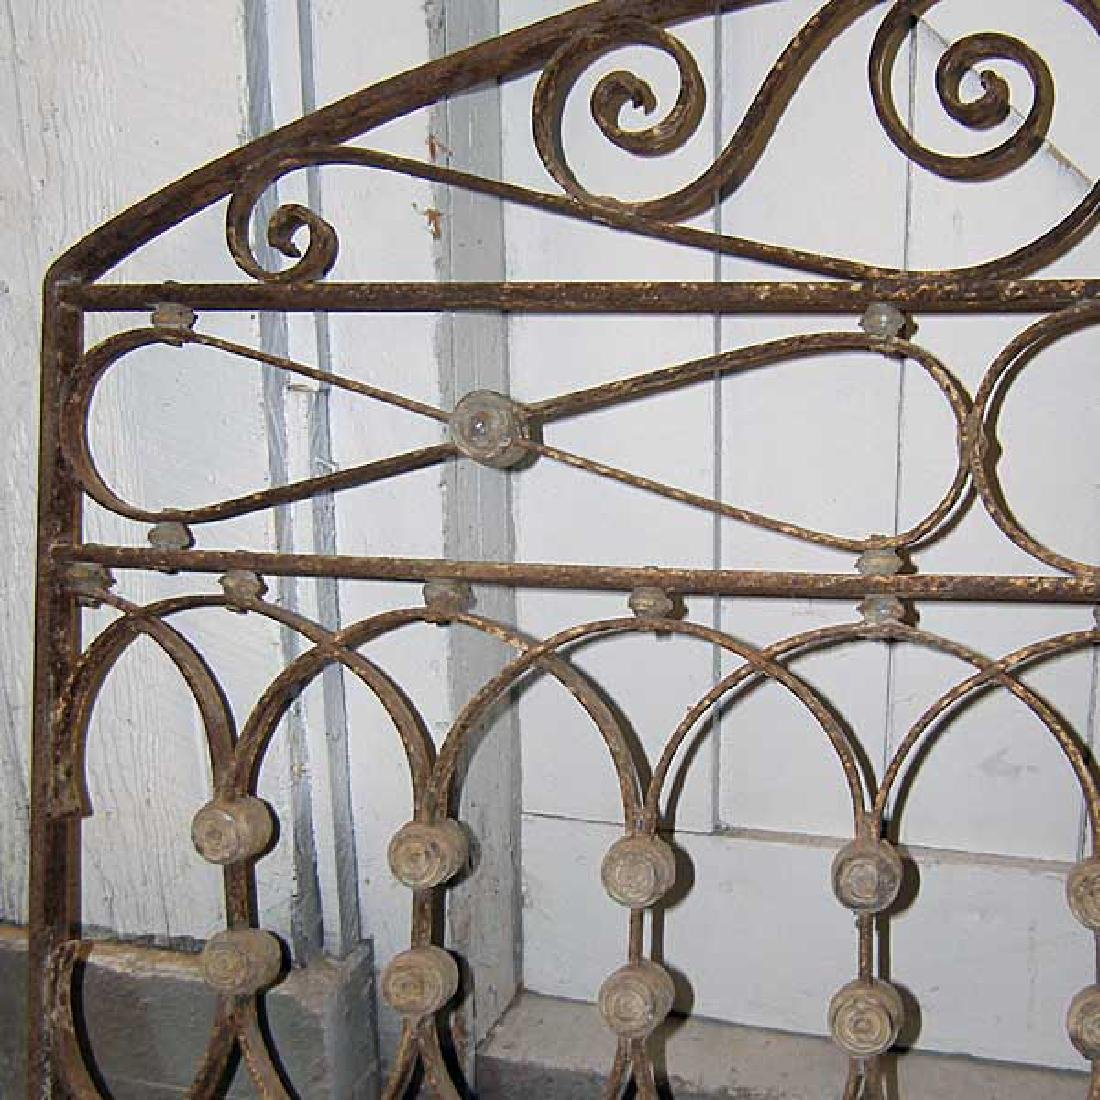 French Wrought Iron & Zinc Arched Transom Grille - 2